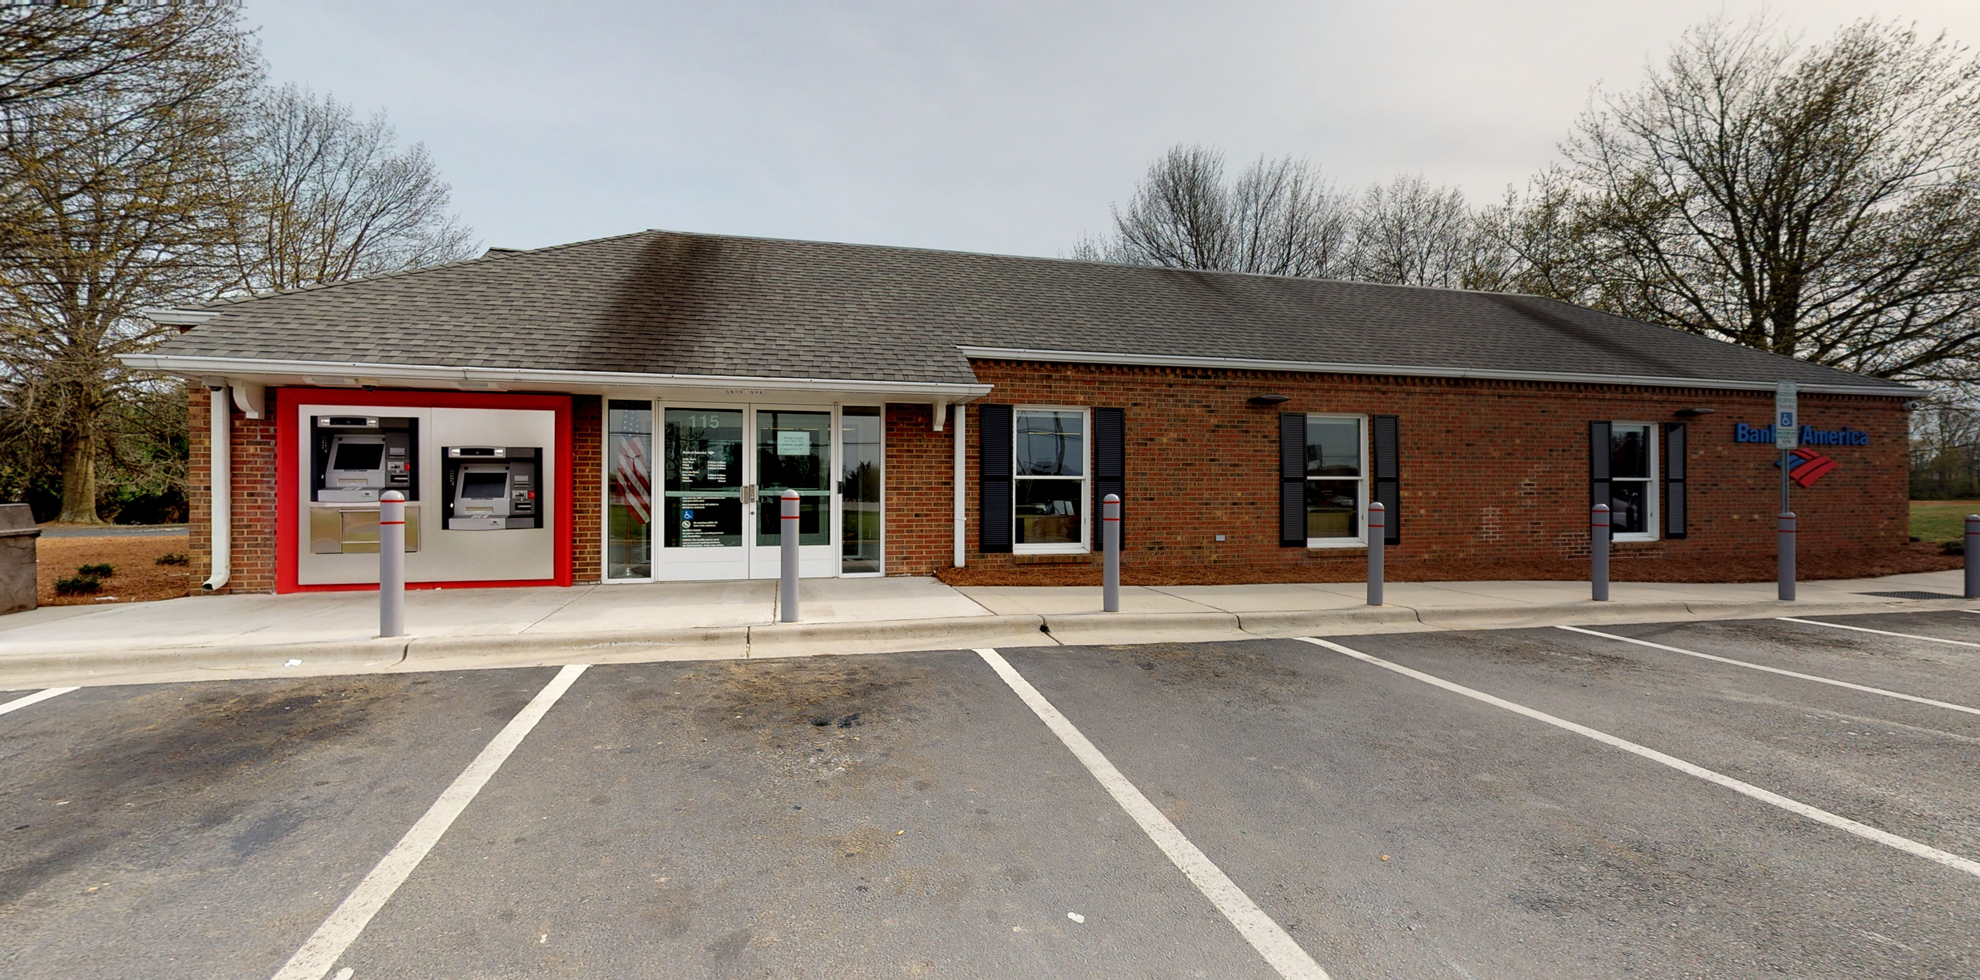 Bank of America financial center with walk-up ATM | 115 W Fairfield Rd, High Point, NC 27263